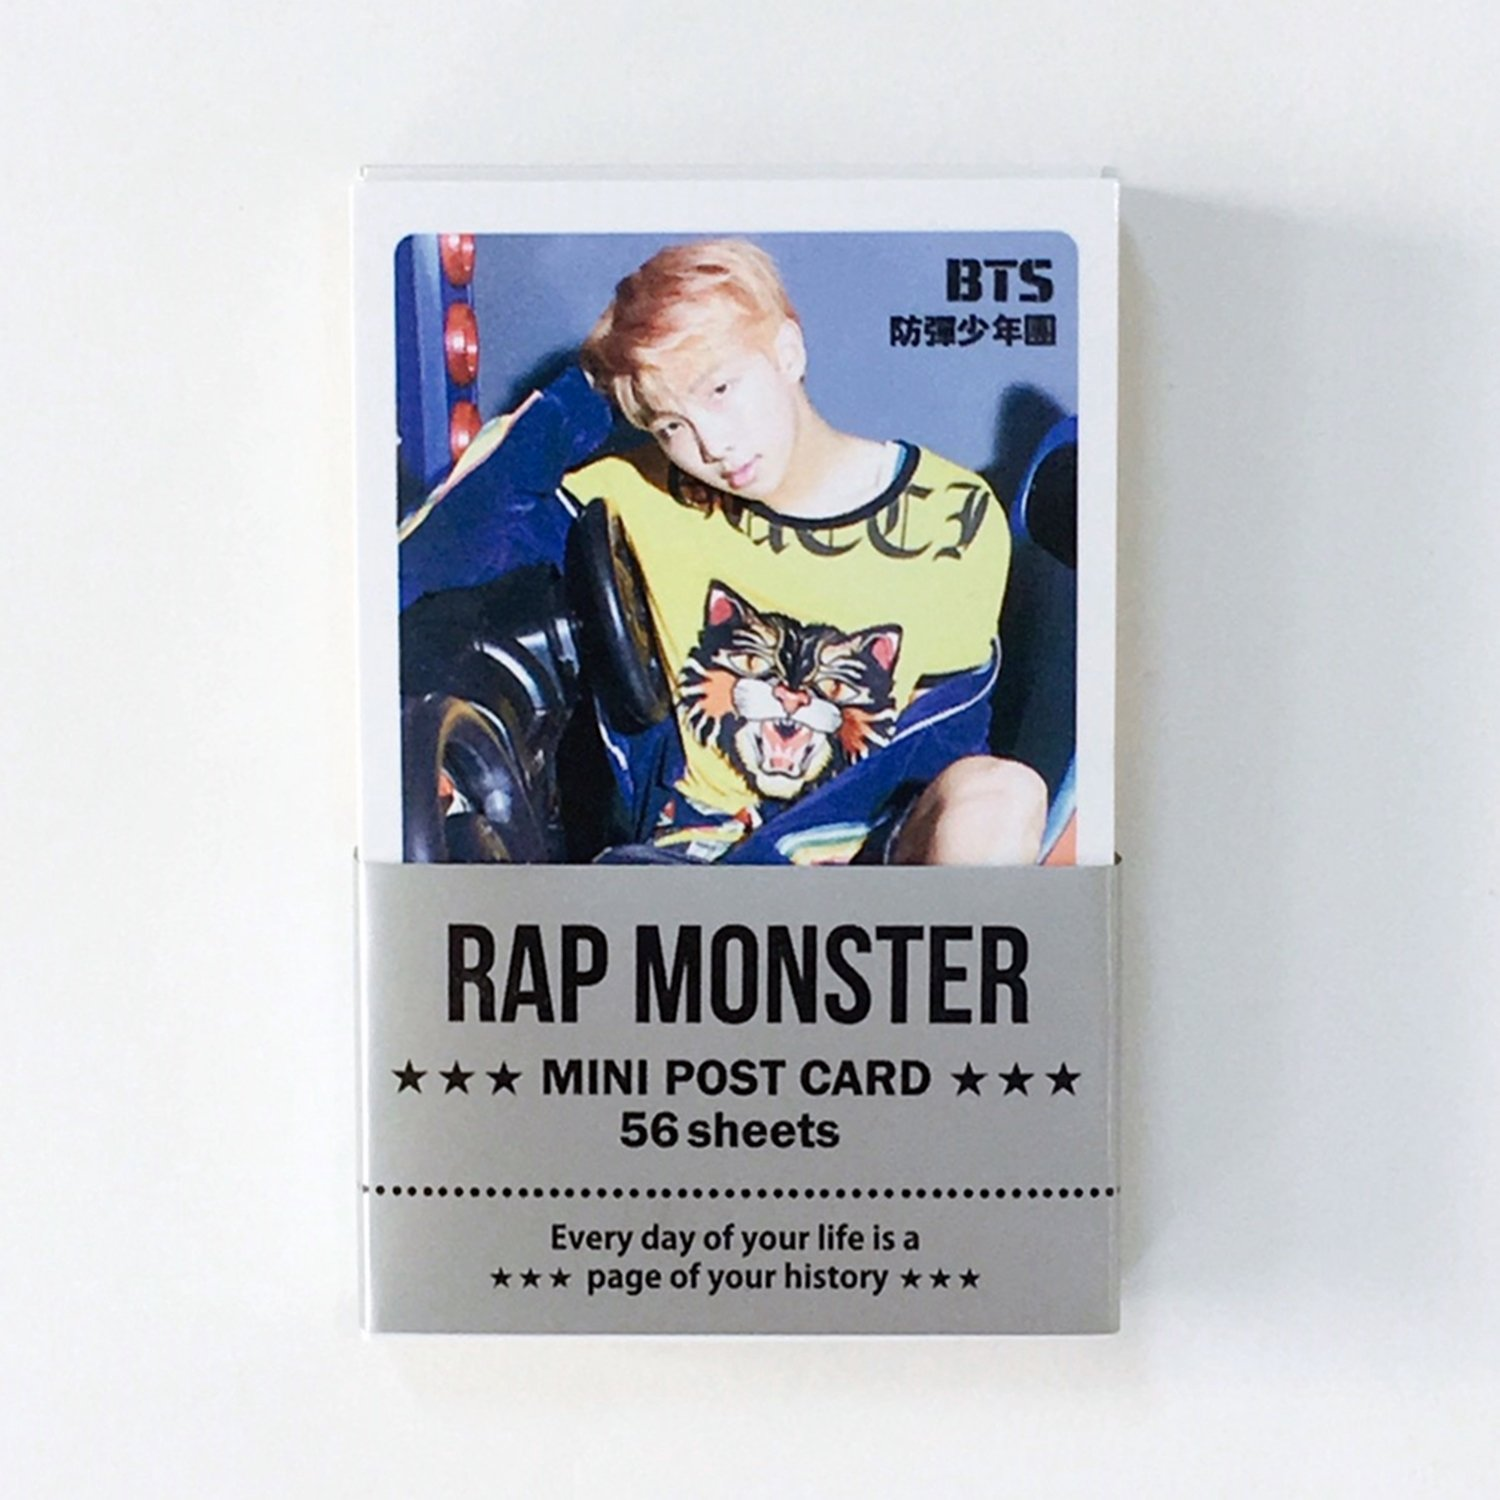 Bts - Rap Monster [56 Photocards Set]